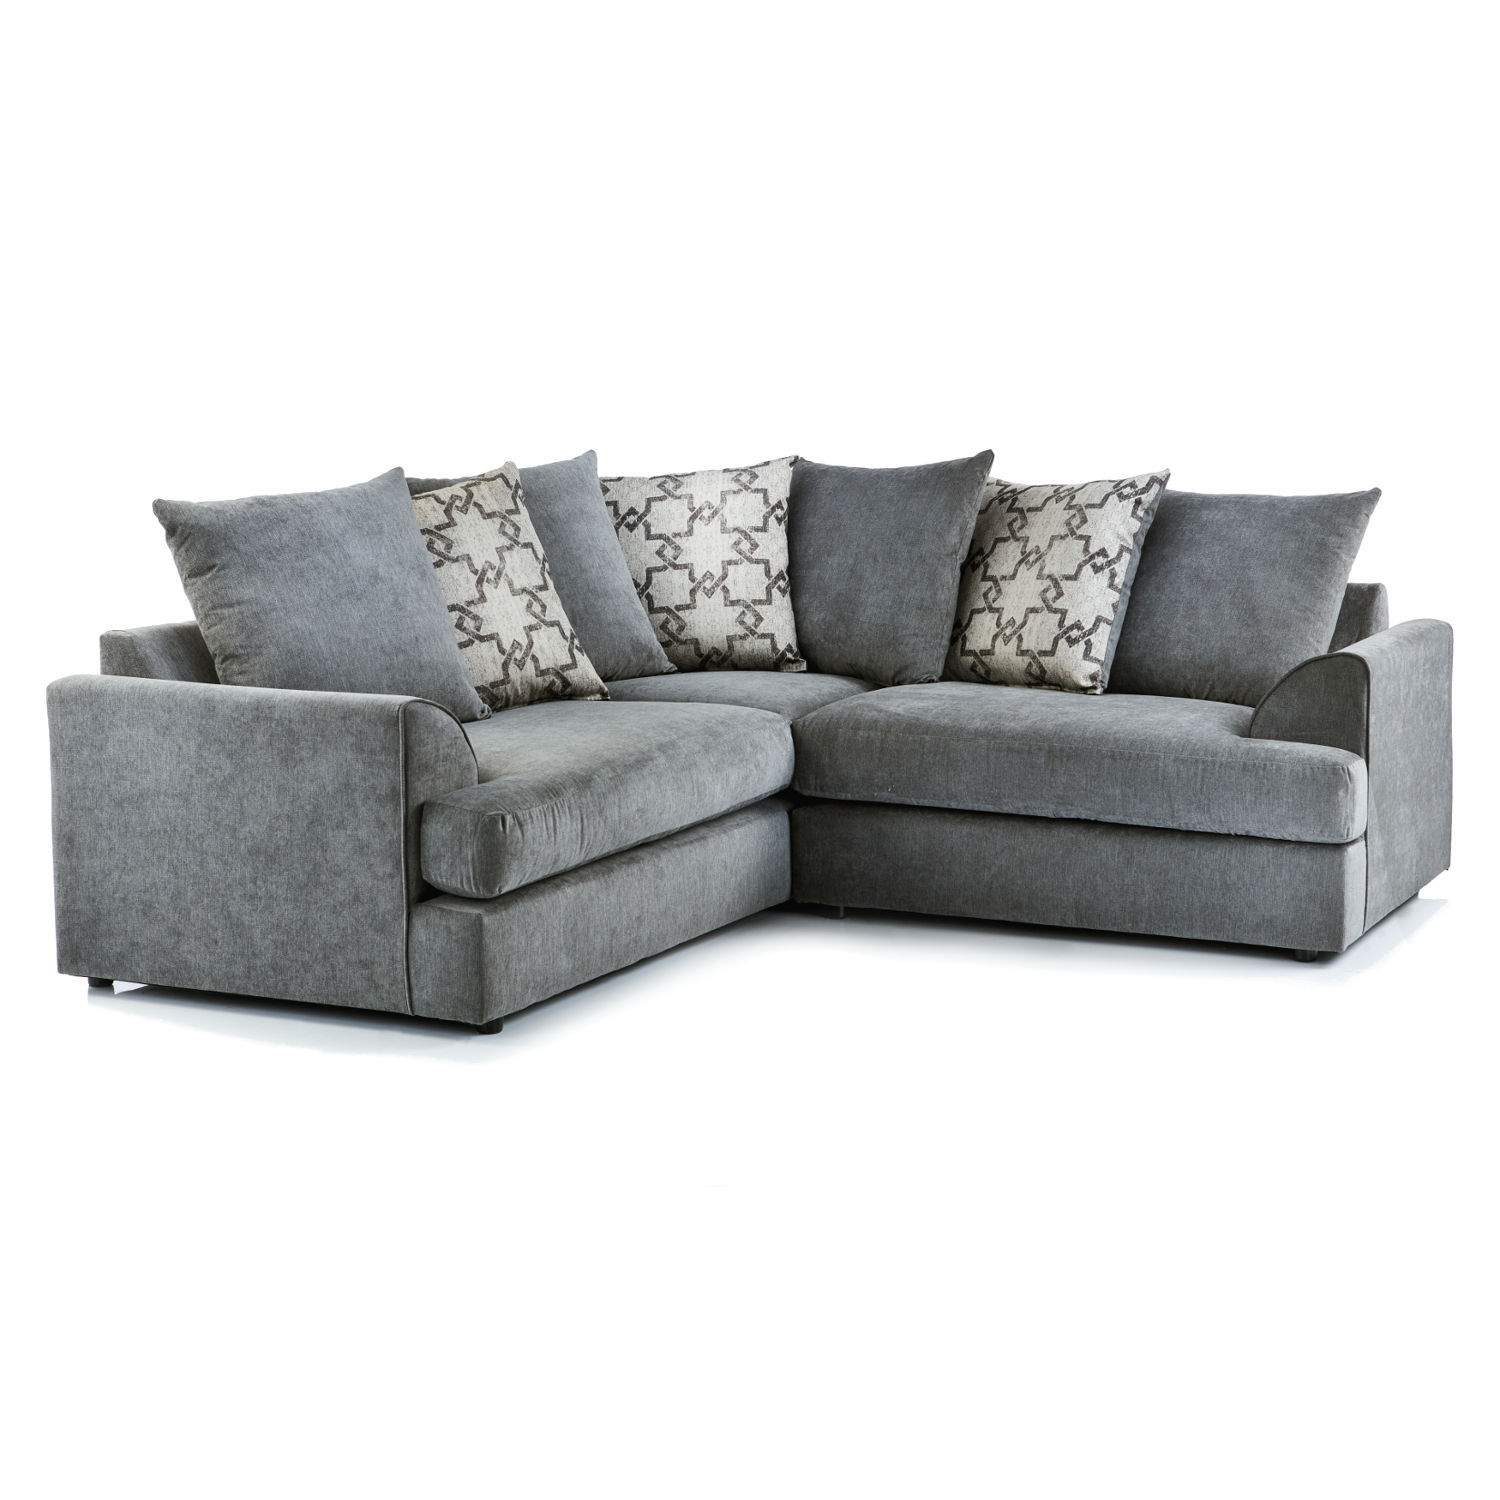 grey and white corner sofa t cushion cover uk washington fabric in charcoal just sit on it